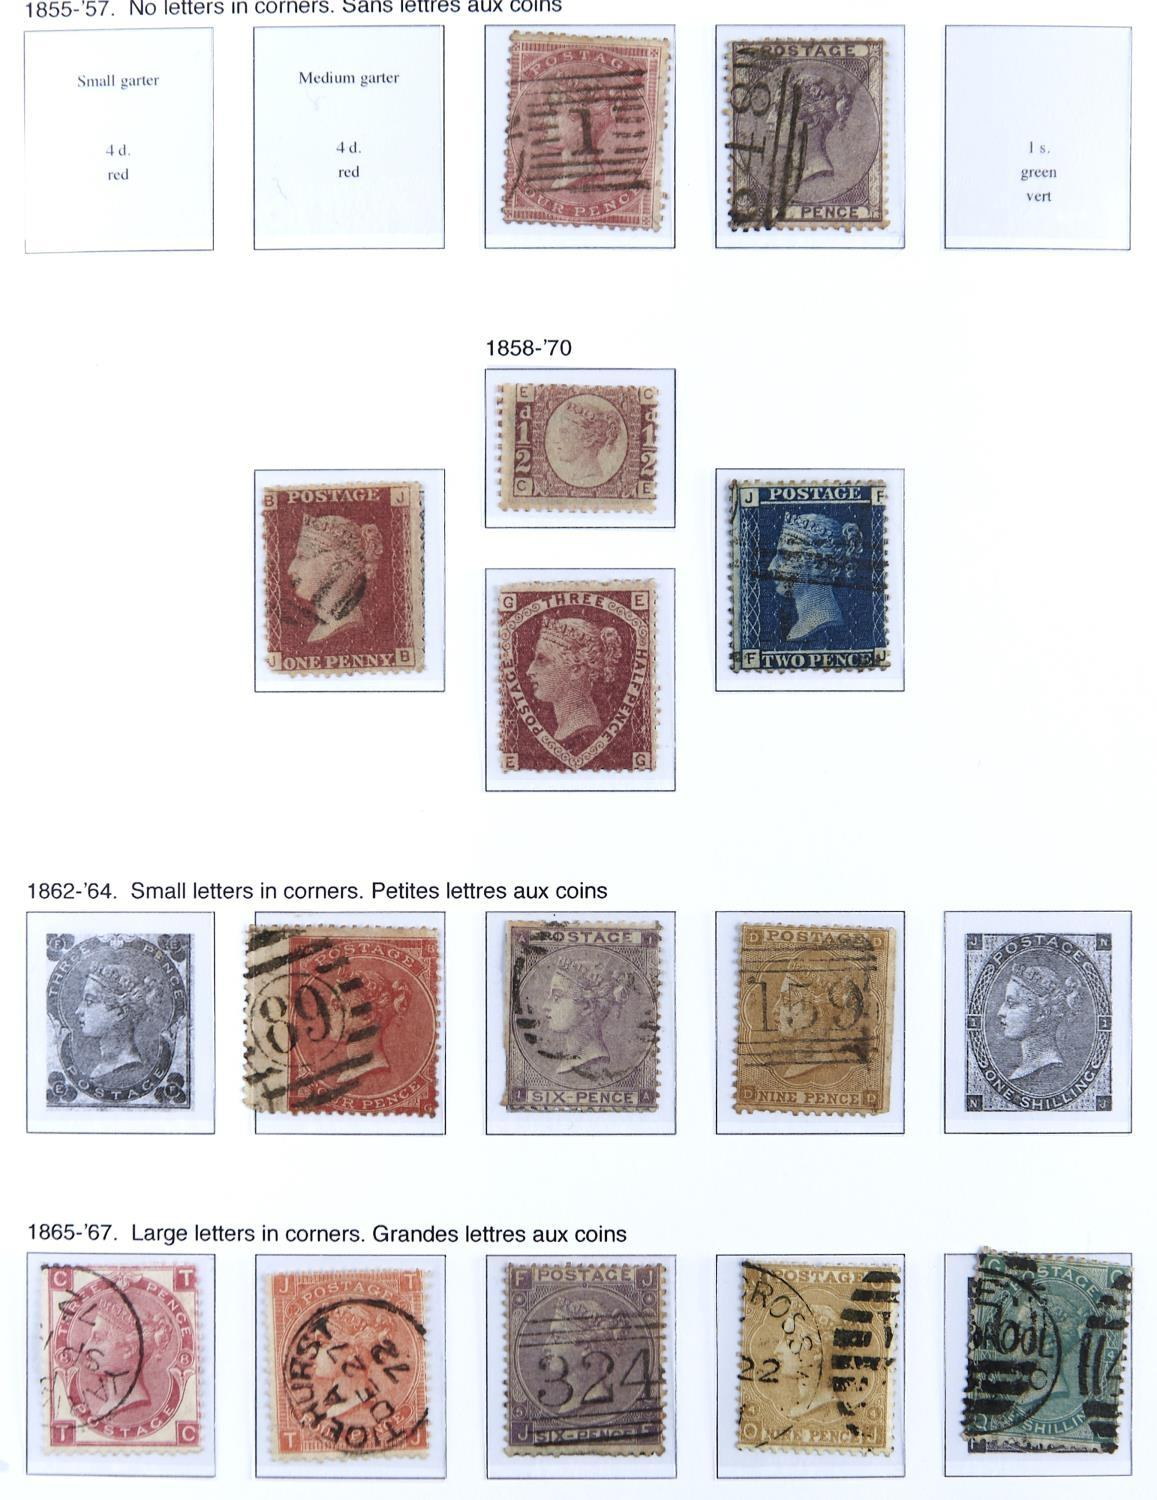 POSTAGE STAMPS. GREAT BRITAIN USED COLLECTION ON LEAVES FROM 1840 1D BLACK, THREE MARGIN LIGHT RED